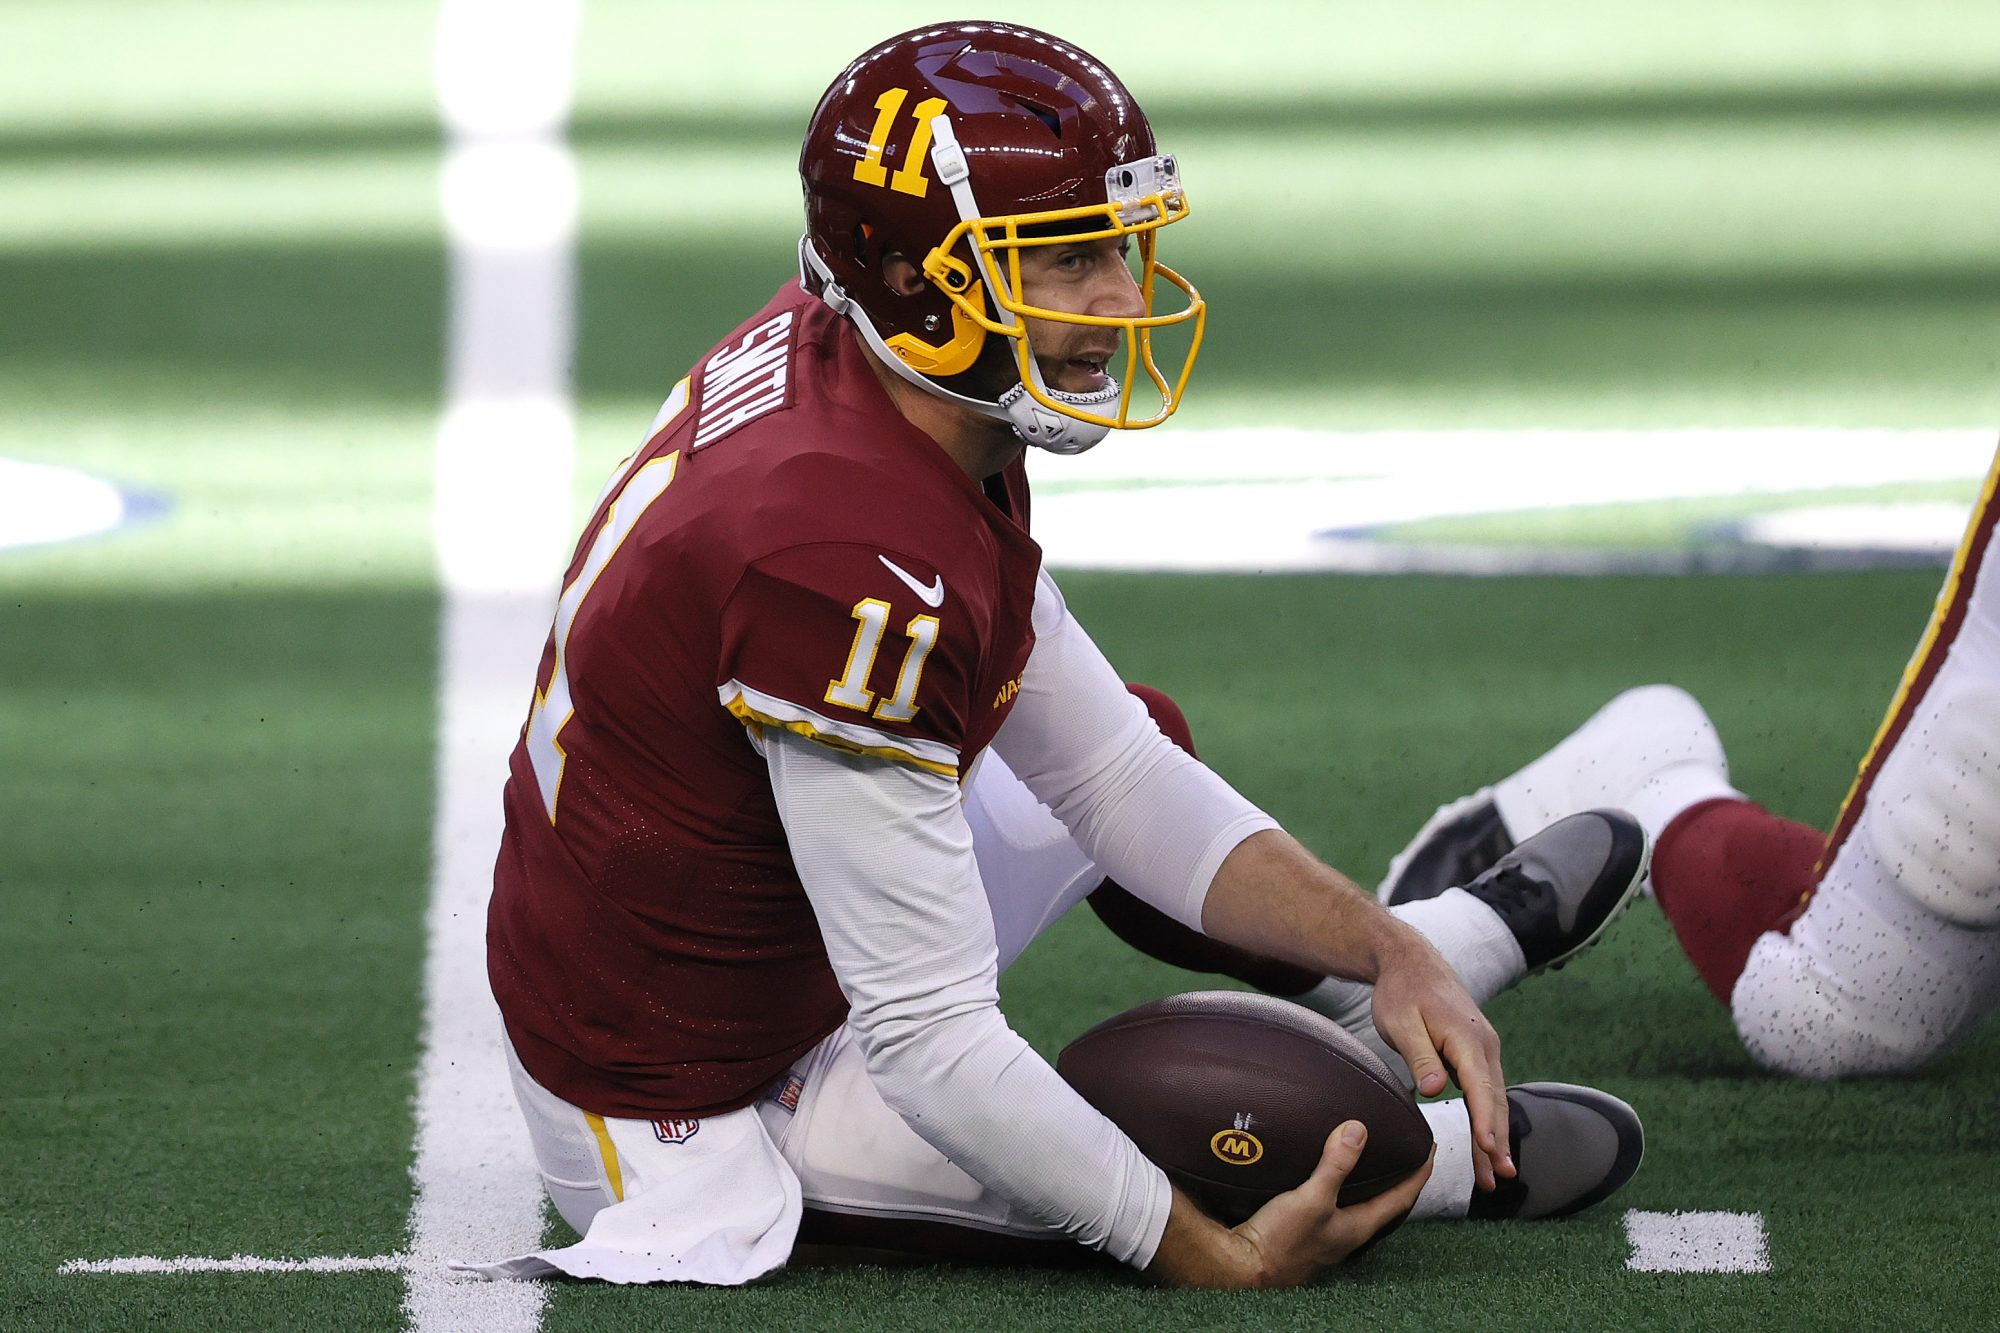 Washington Football Team quarterback Alex Smith lies crumpled on the turf after being tackled. He's fine! Both legs are intact.